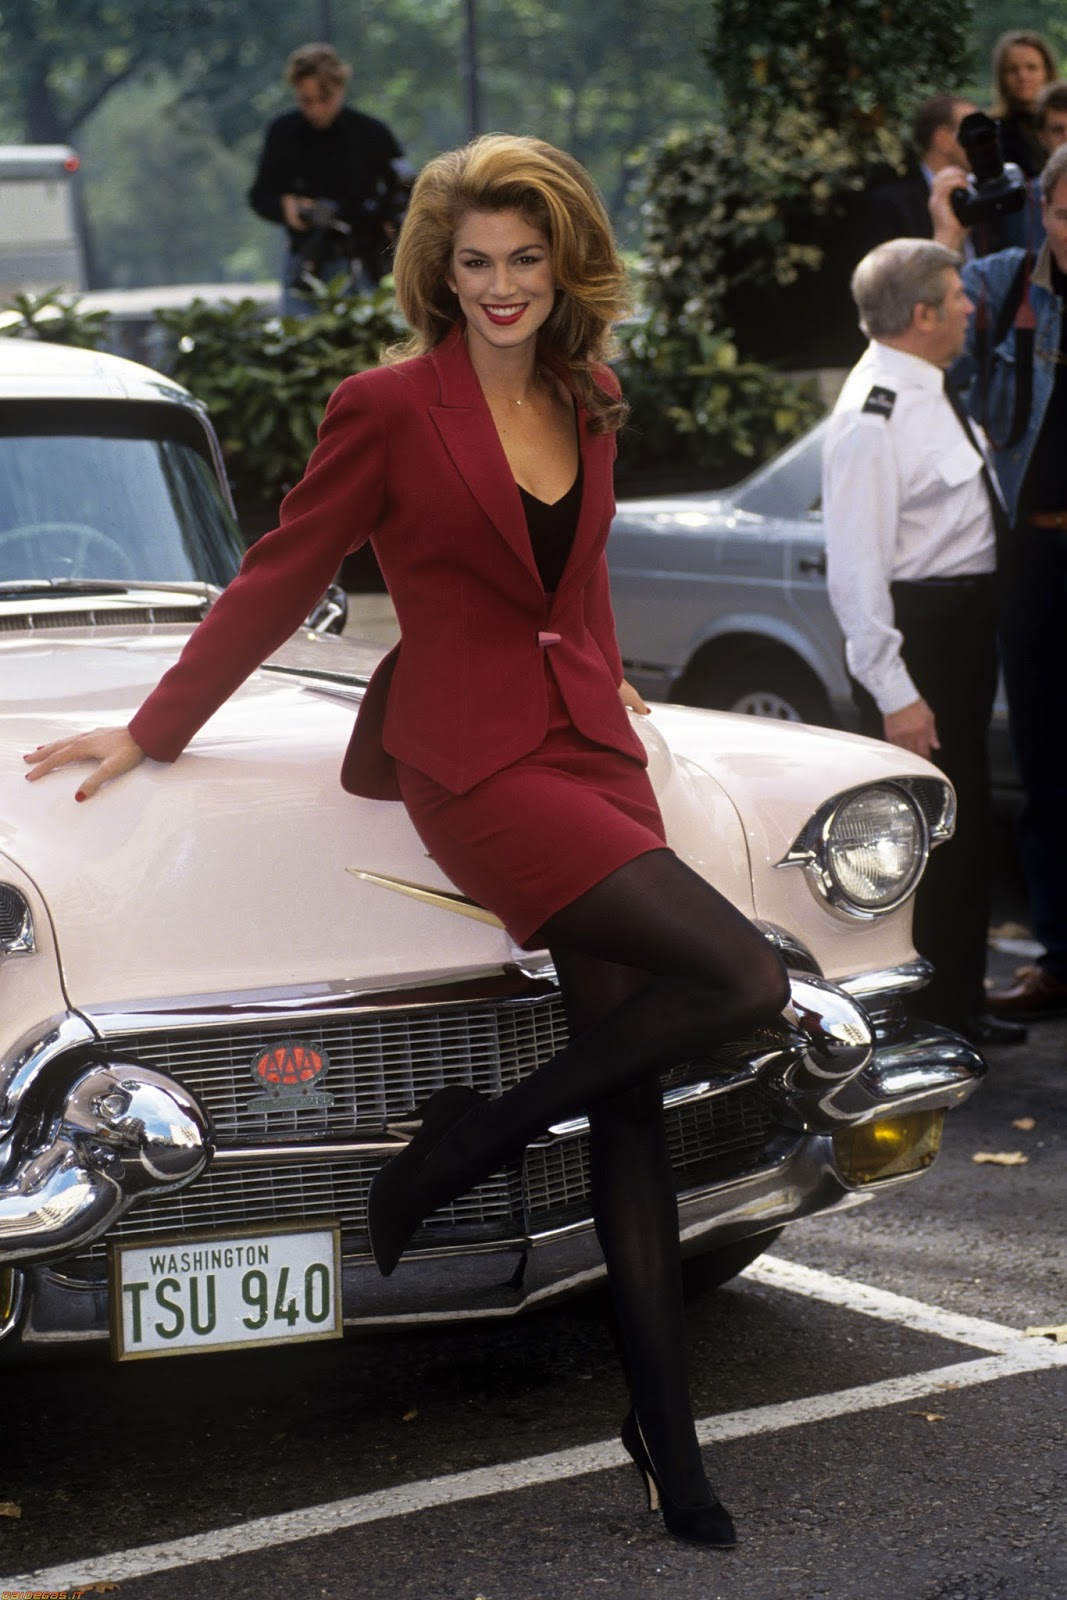 Celebrity Legs and Feet in Tights: Cindy Crawford and